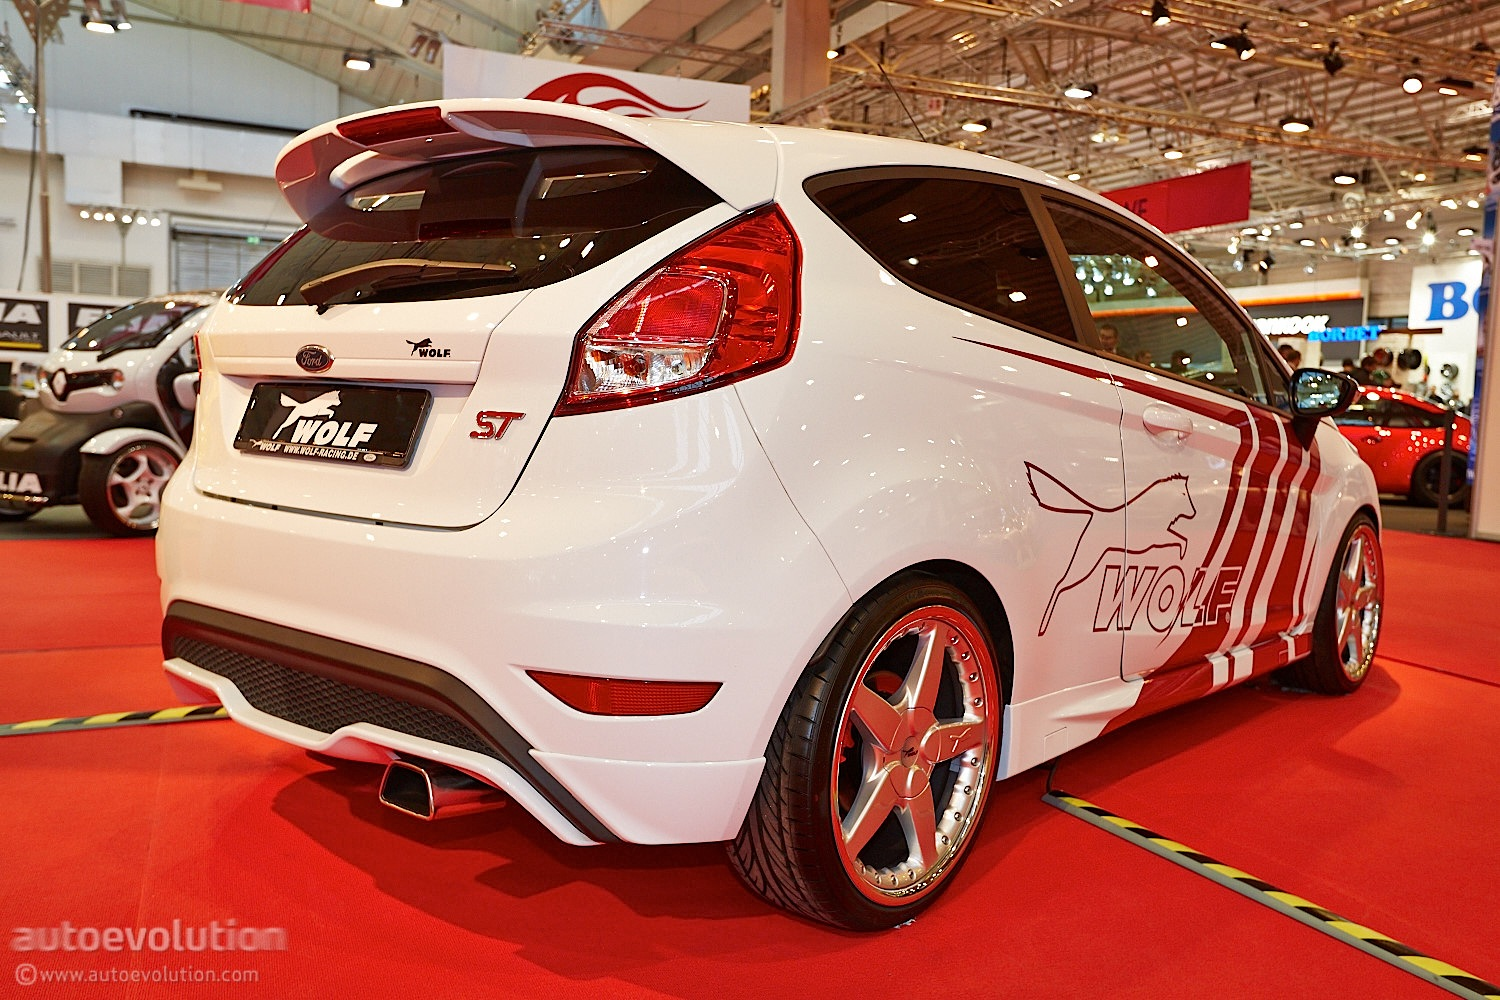 Ford Escape 2014 Custom >> Wolf Racing Ford Focus ST 370 Estate at Essen 2013 [Live Photos] - autoevolution